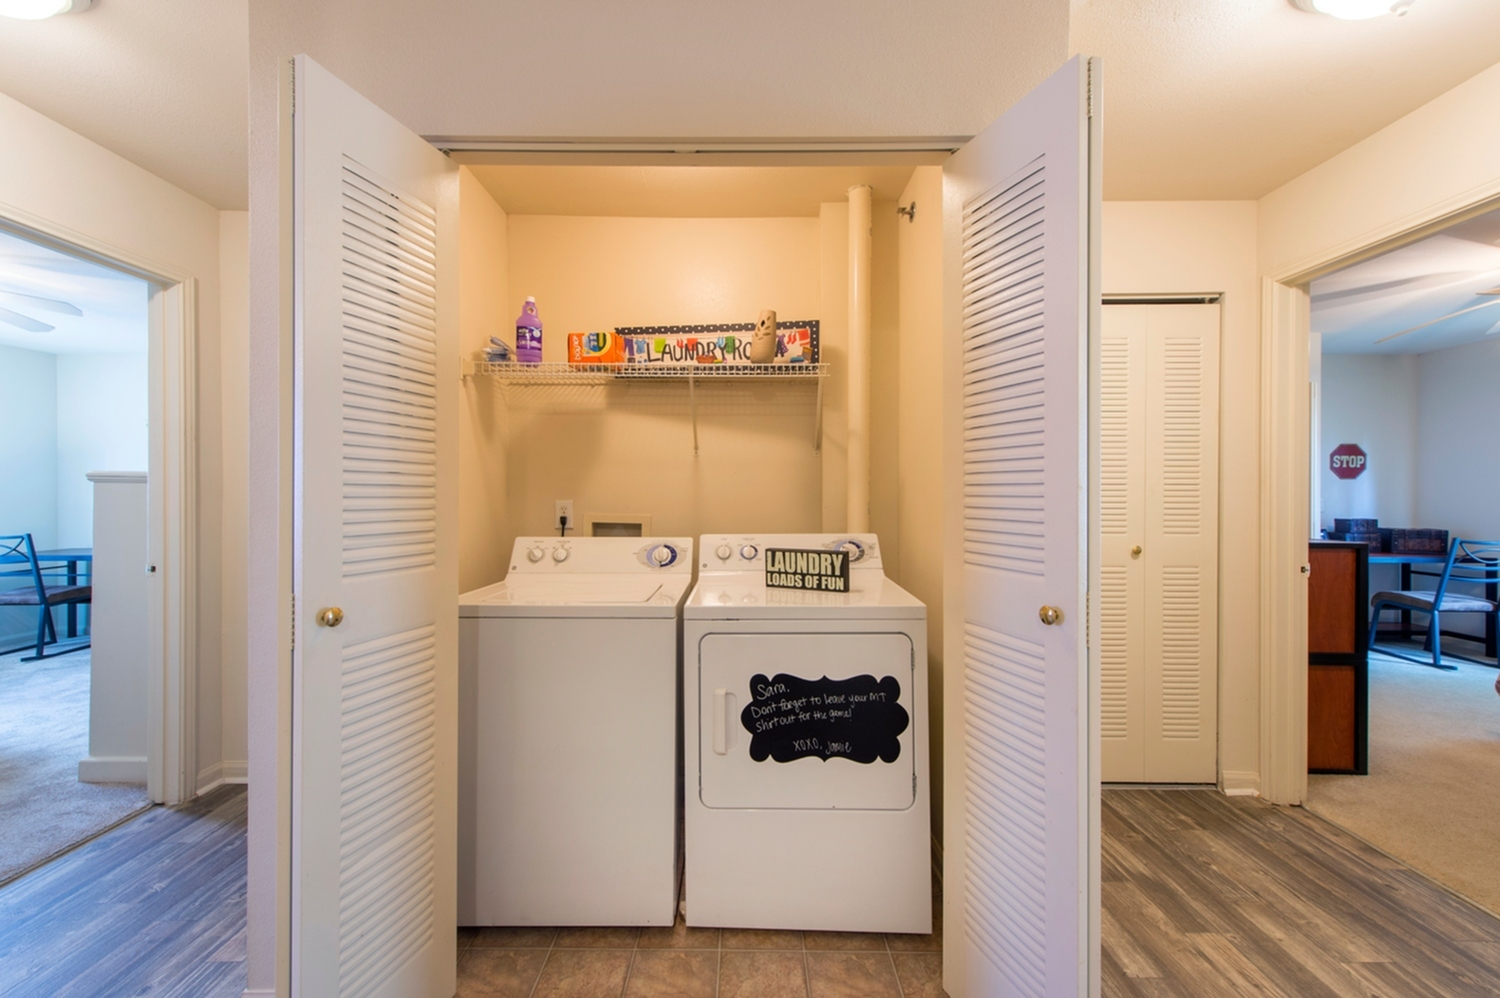 In-home Laundry  | Apartment Homes for rent in Murfreesboro, TN | Campus Crossing